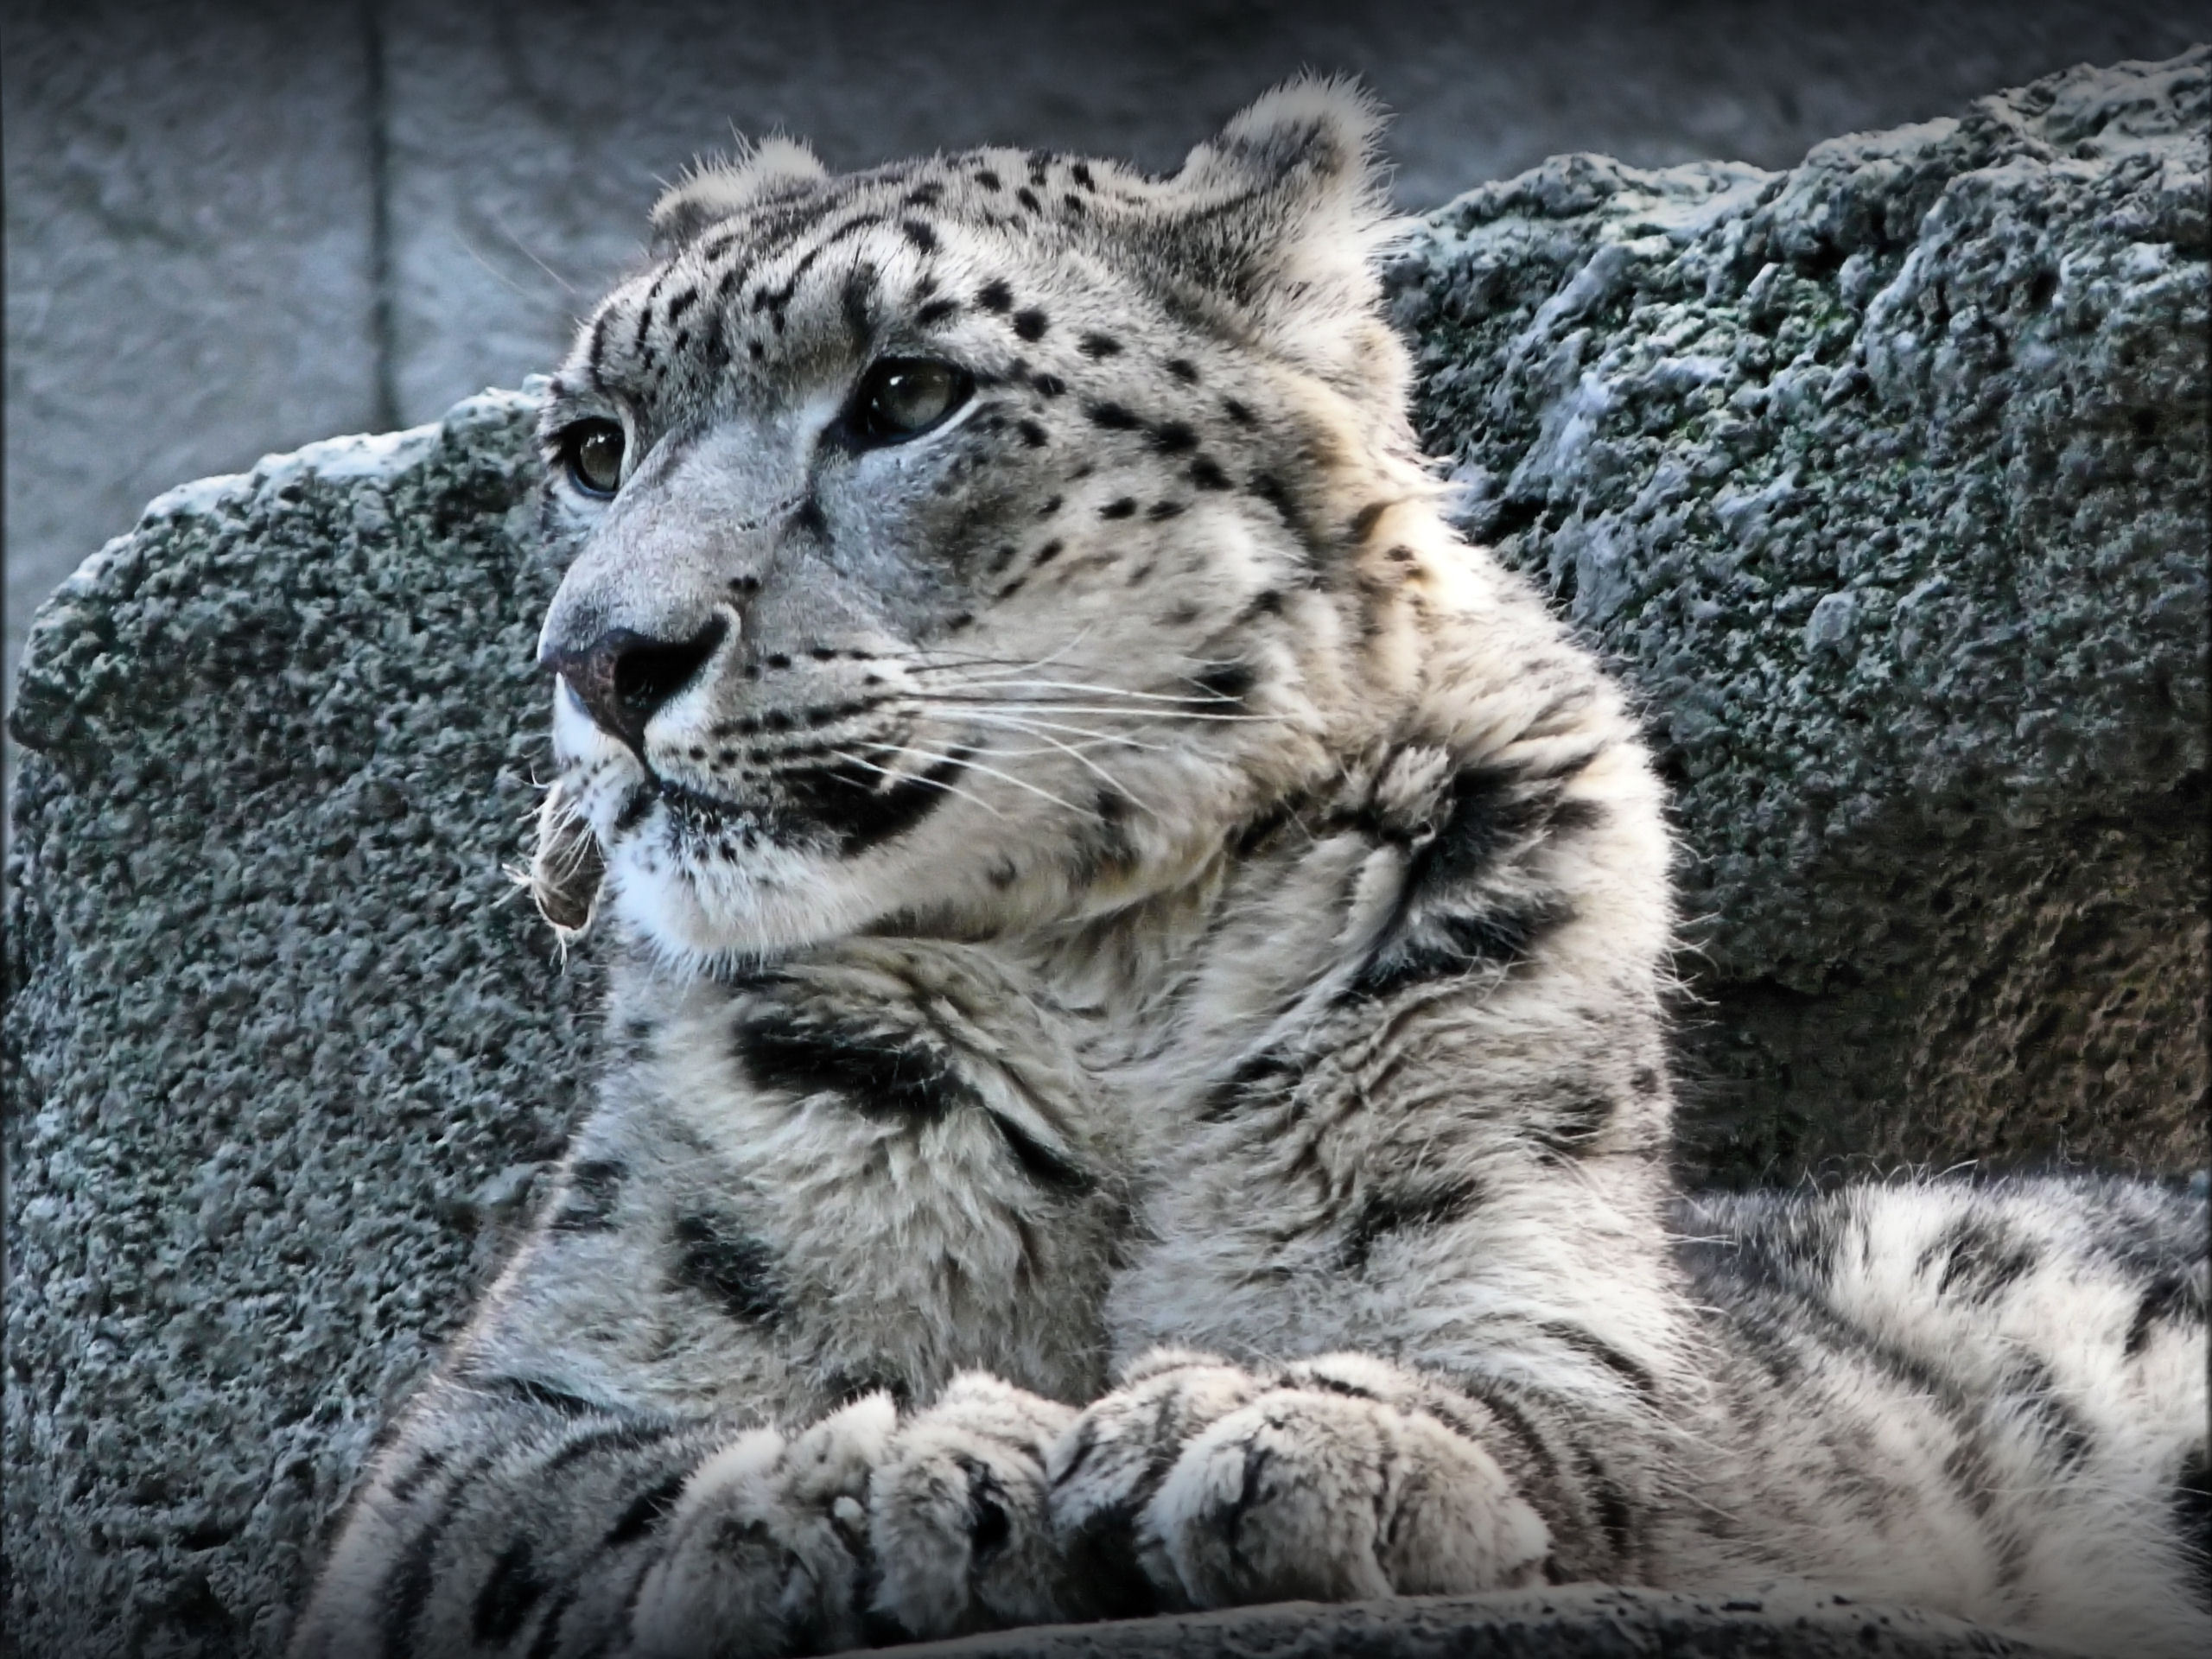 33610 download wallpaper Animals, Snow Leopard screensavers and pictures for free